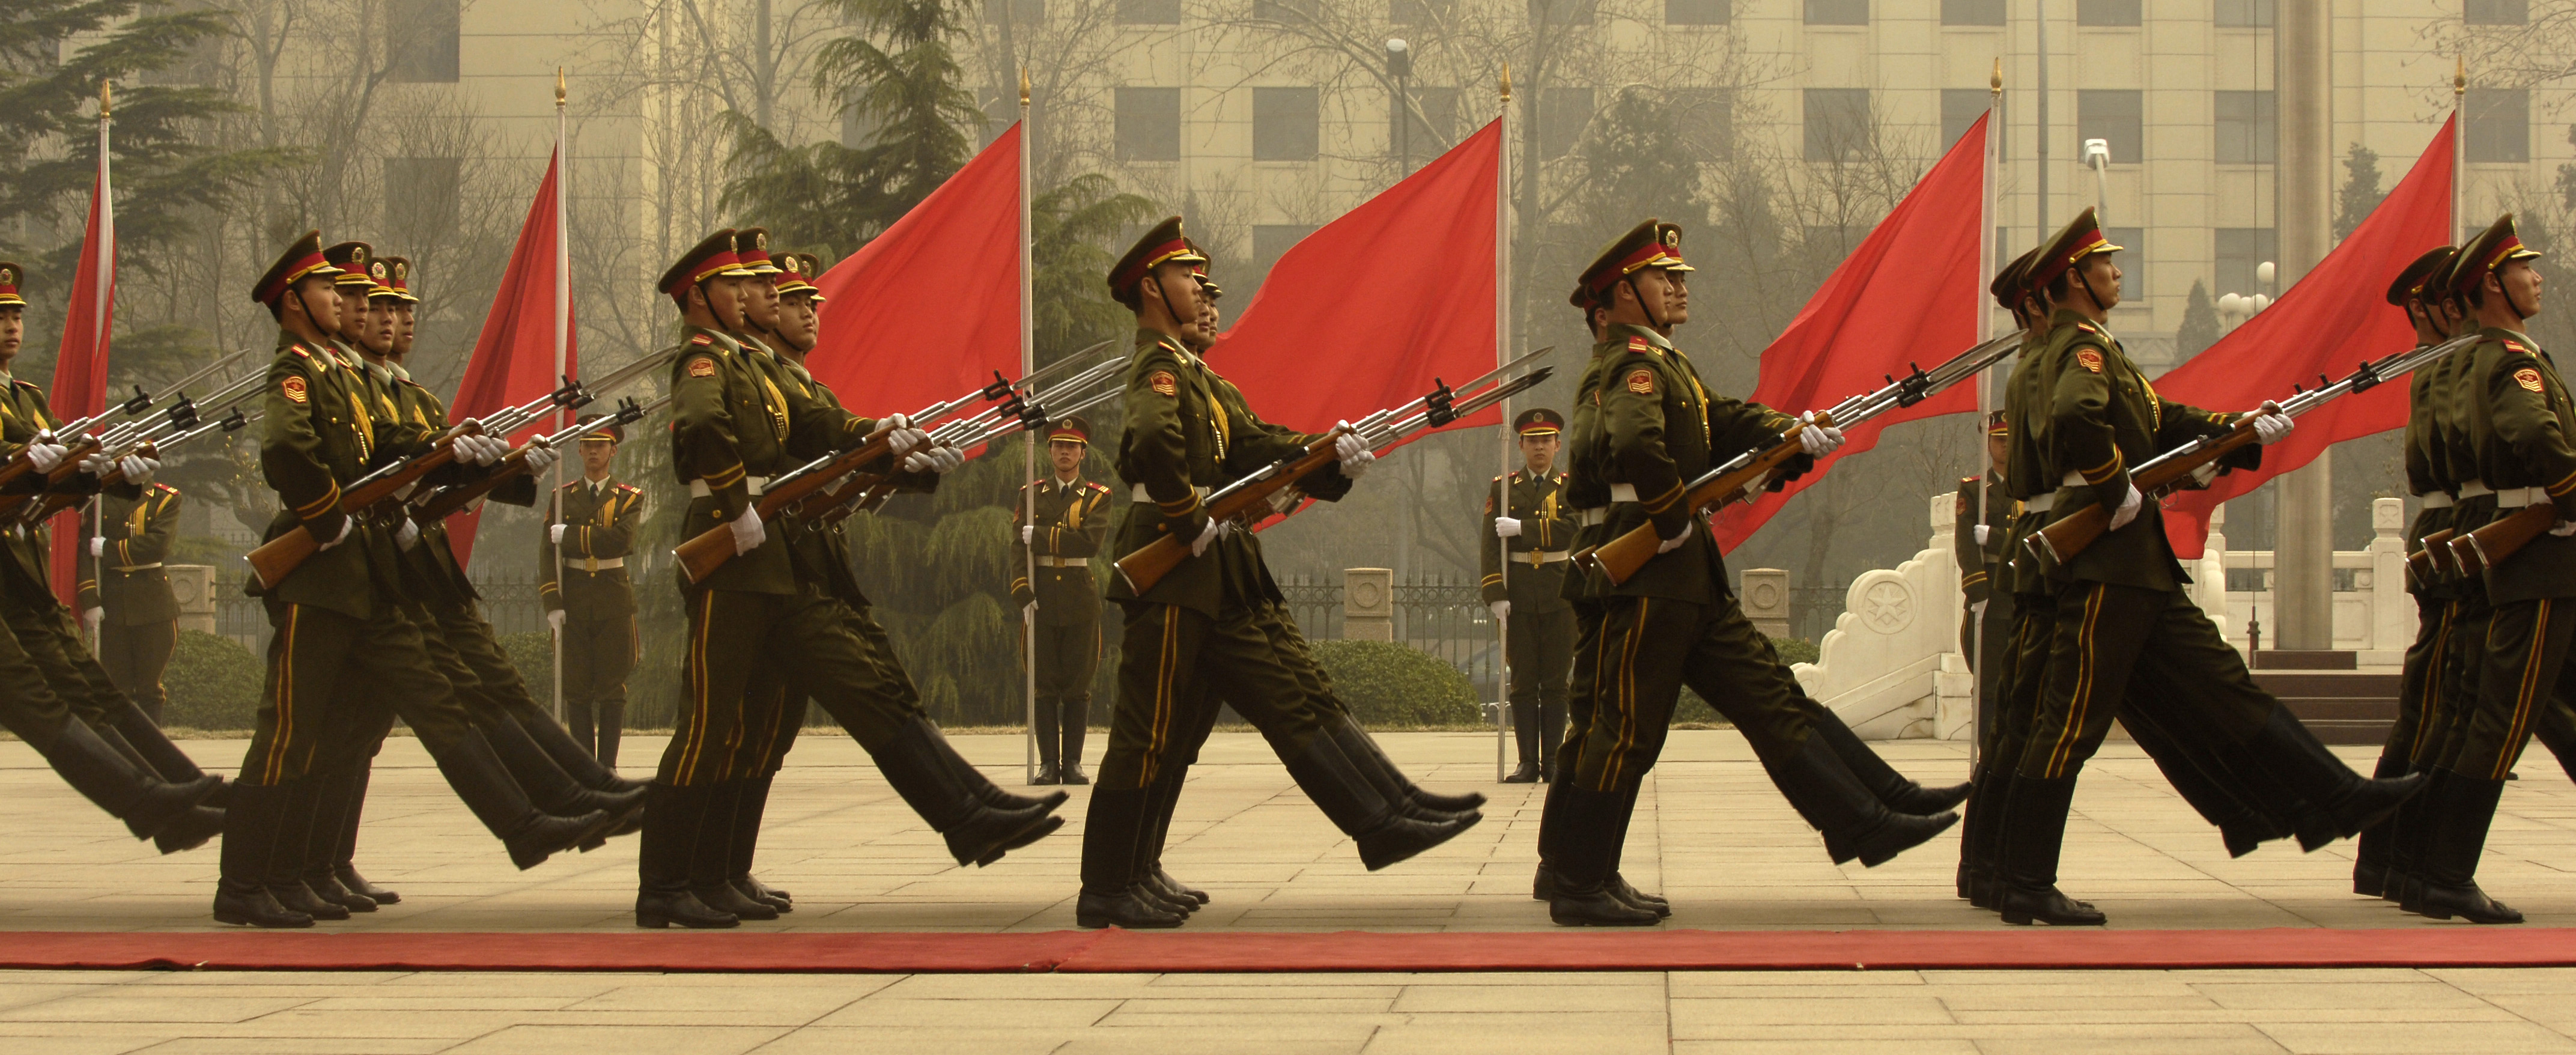 Members of a Chinese military honor guard. China possesses the largest standing army in the world, with around 2.3 million active personnel. Its ground forces alone total 1.7 million soldiers.